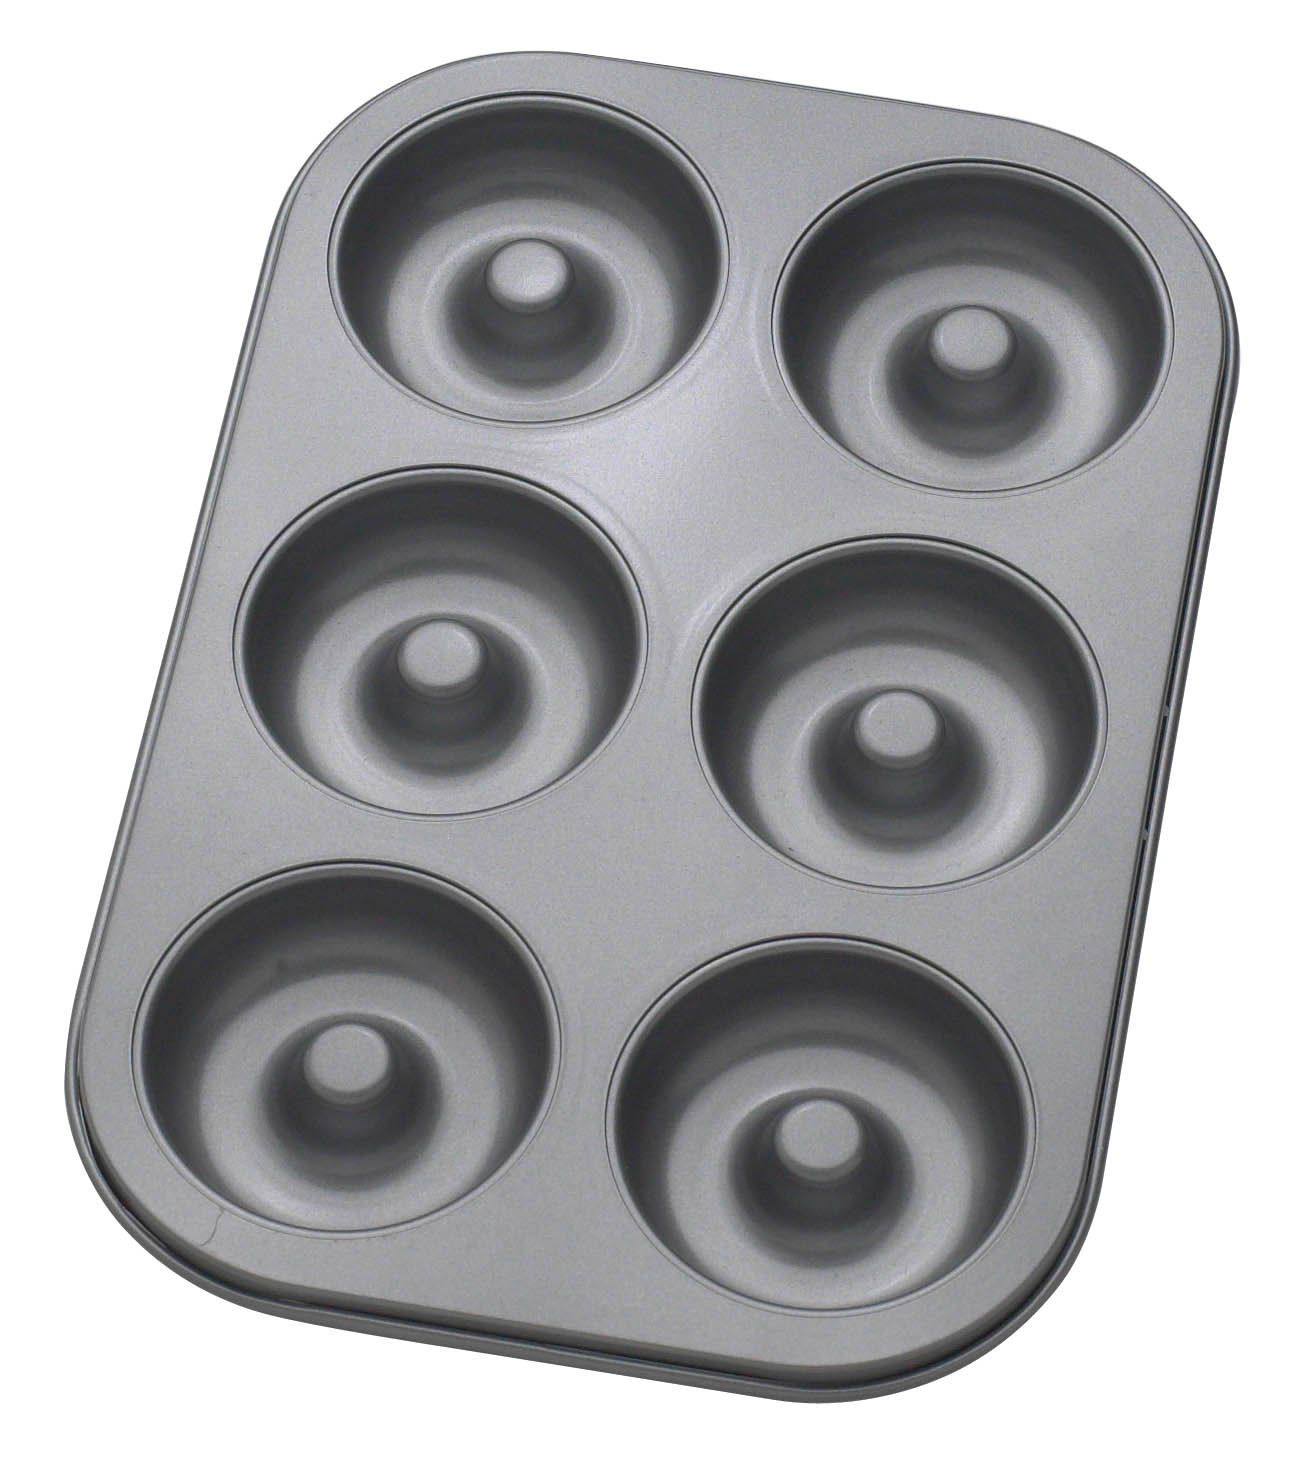 Mrs. Anderson's Baking Non-Stick Donut Pan, 6-Cup HIC Brands that Cook 43710